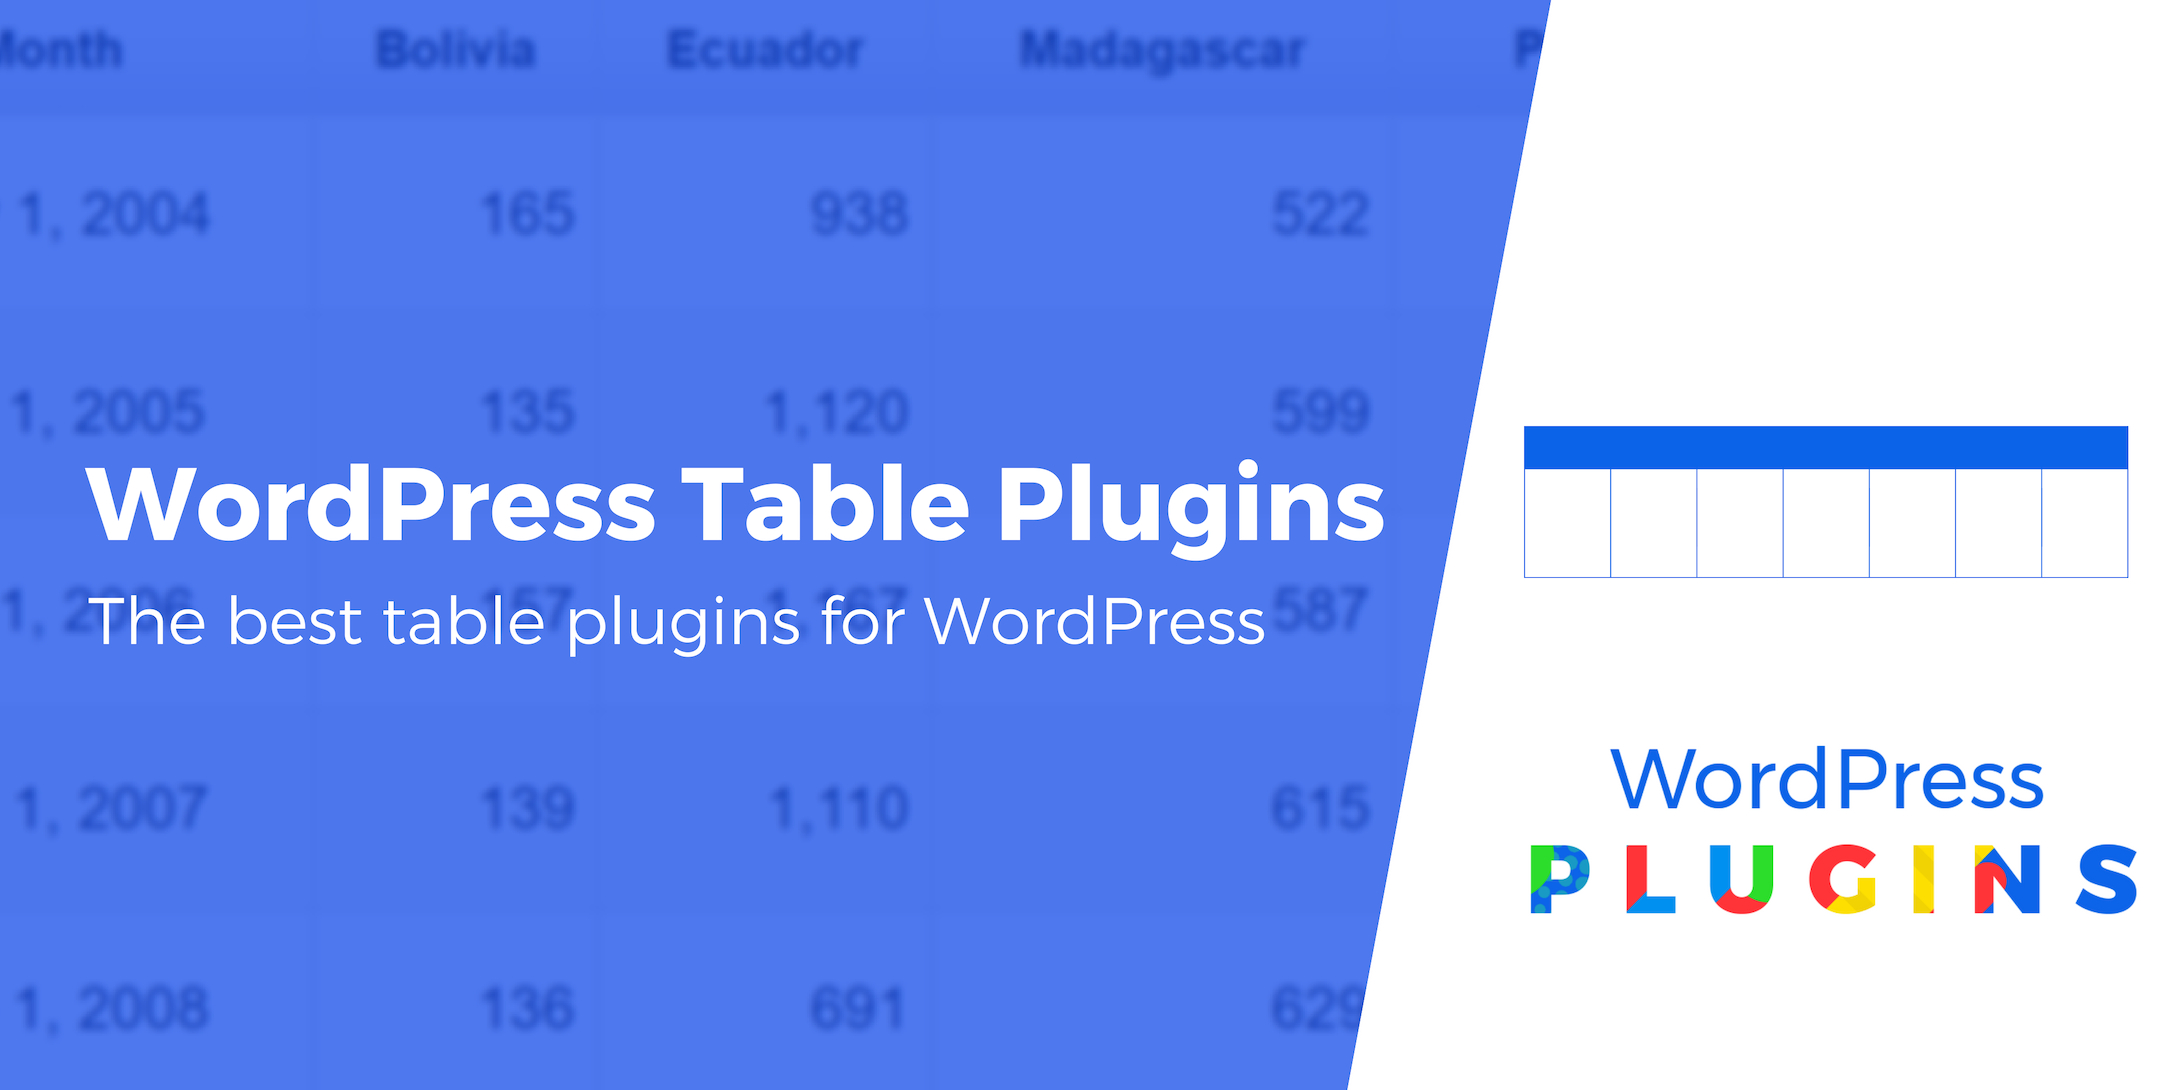 WordPress Table Plugins